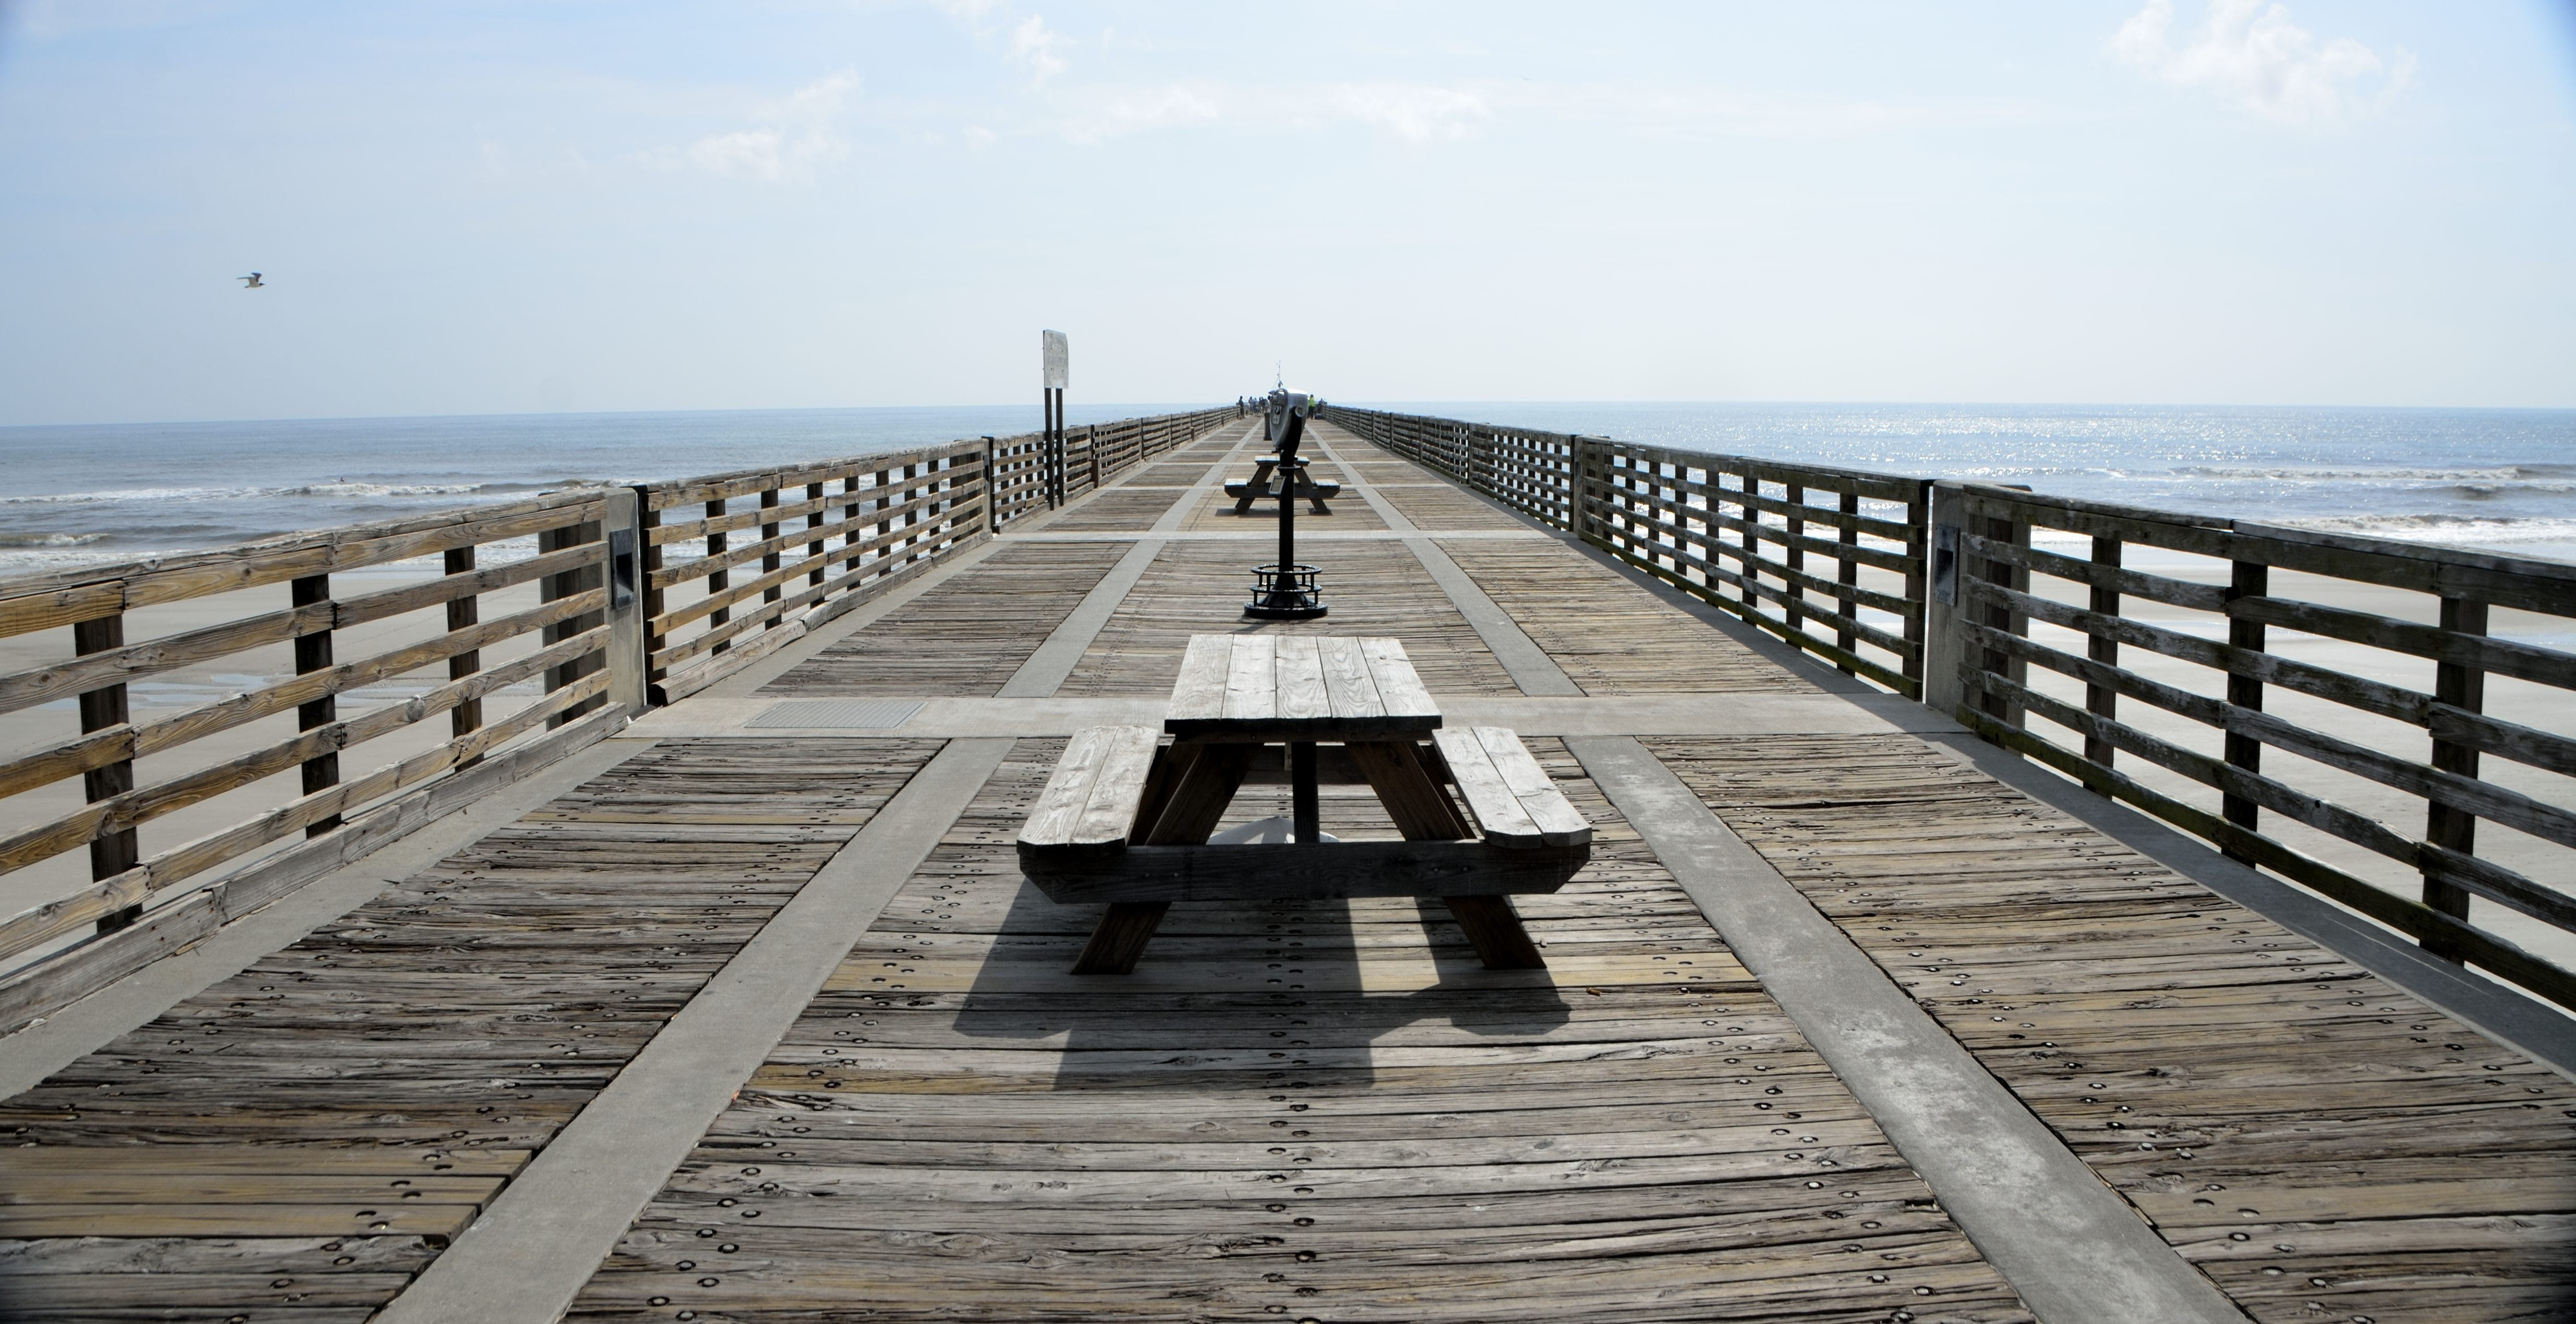 Black Wooden Picnic Table on the Wooden Dock